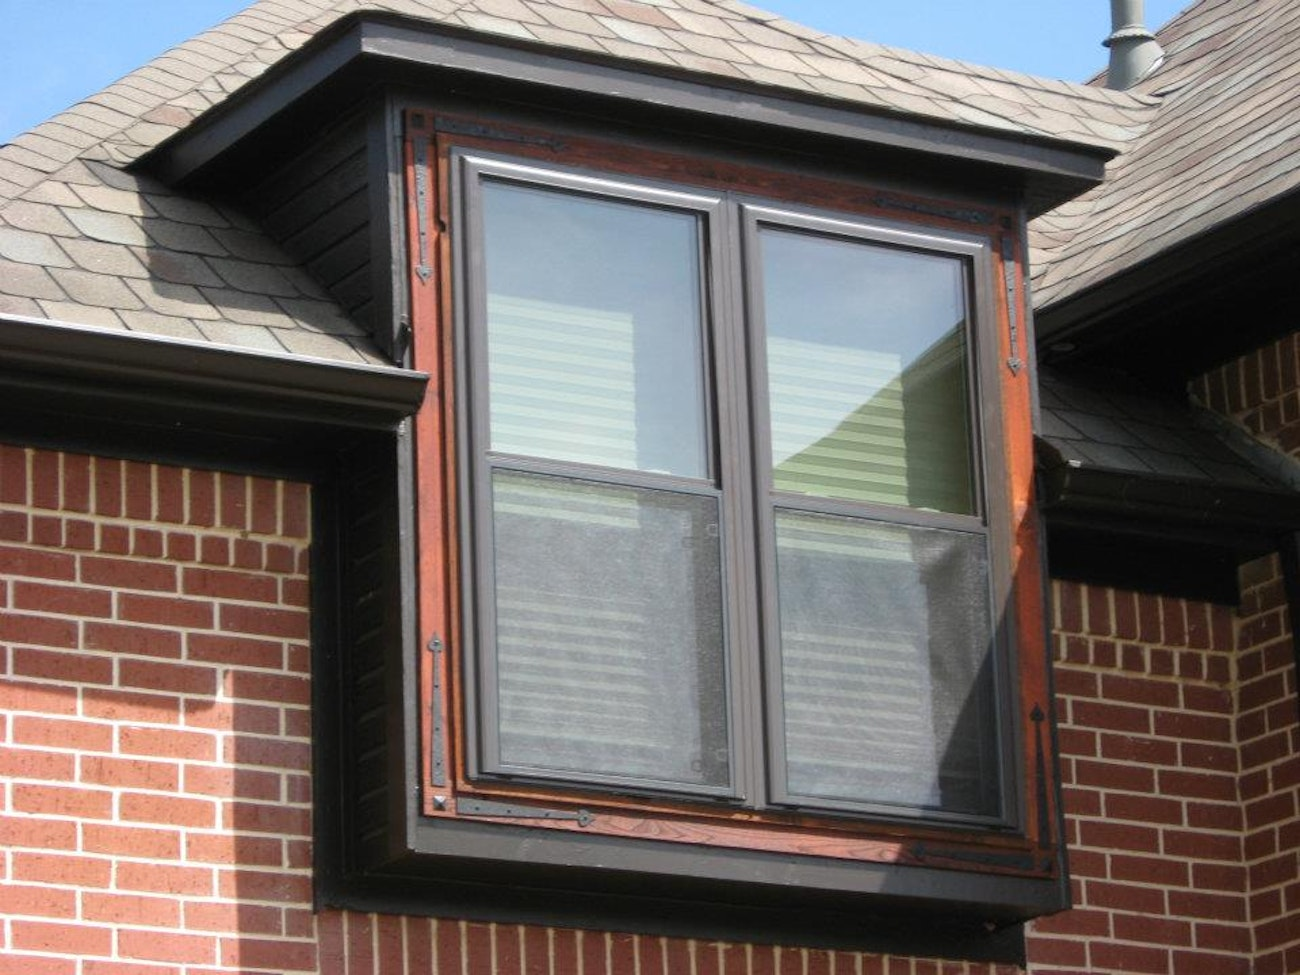 bronze-single-hung-twin-windows-with-red-brick